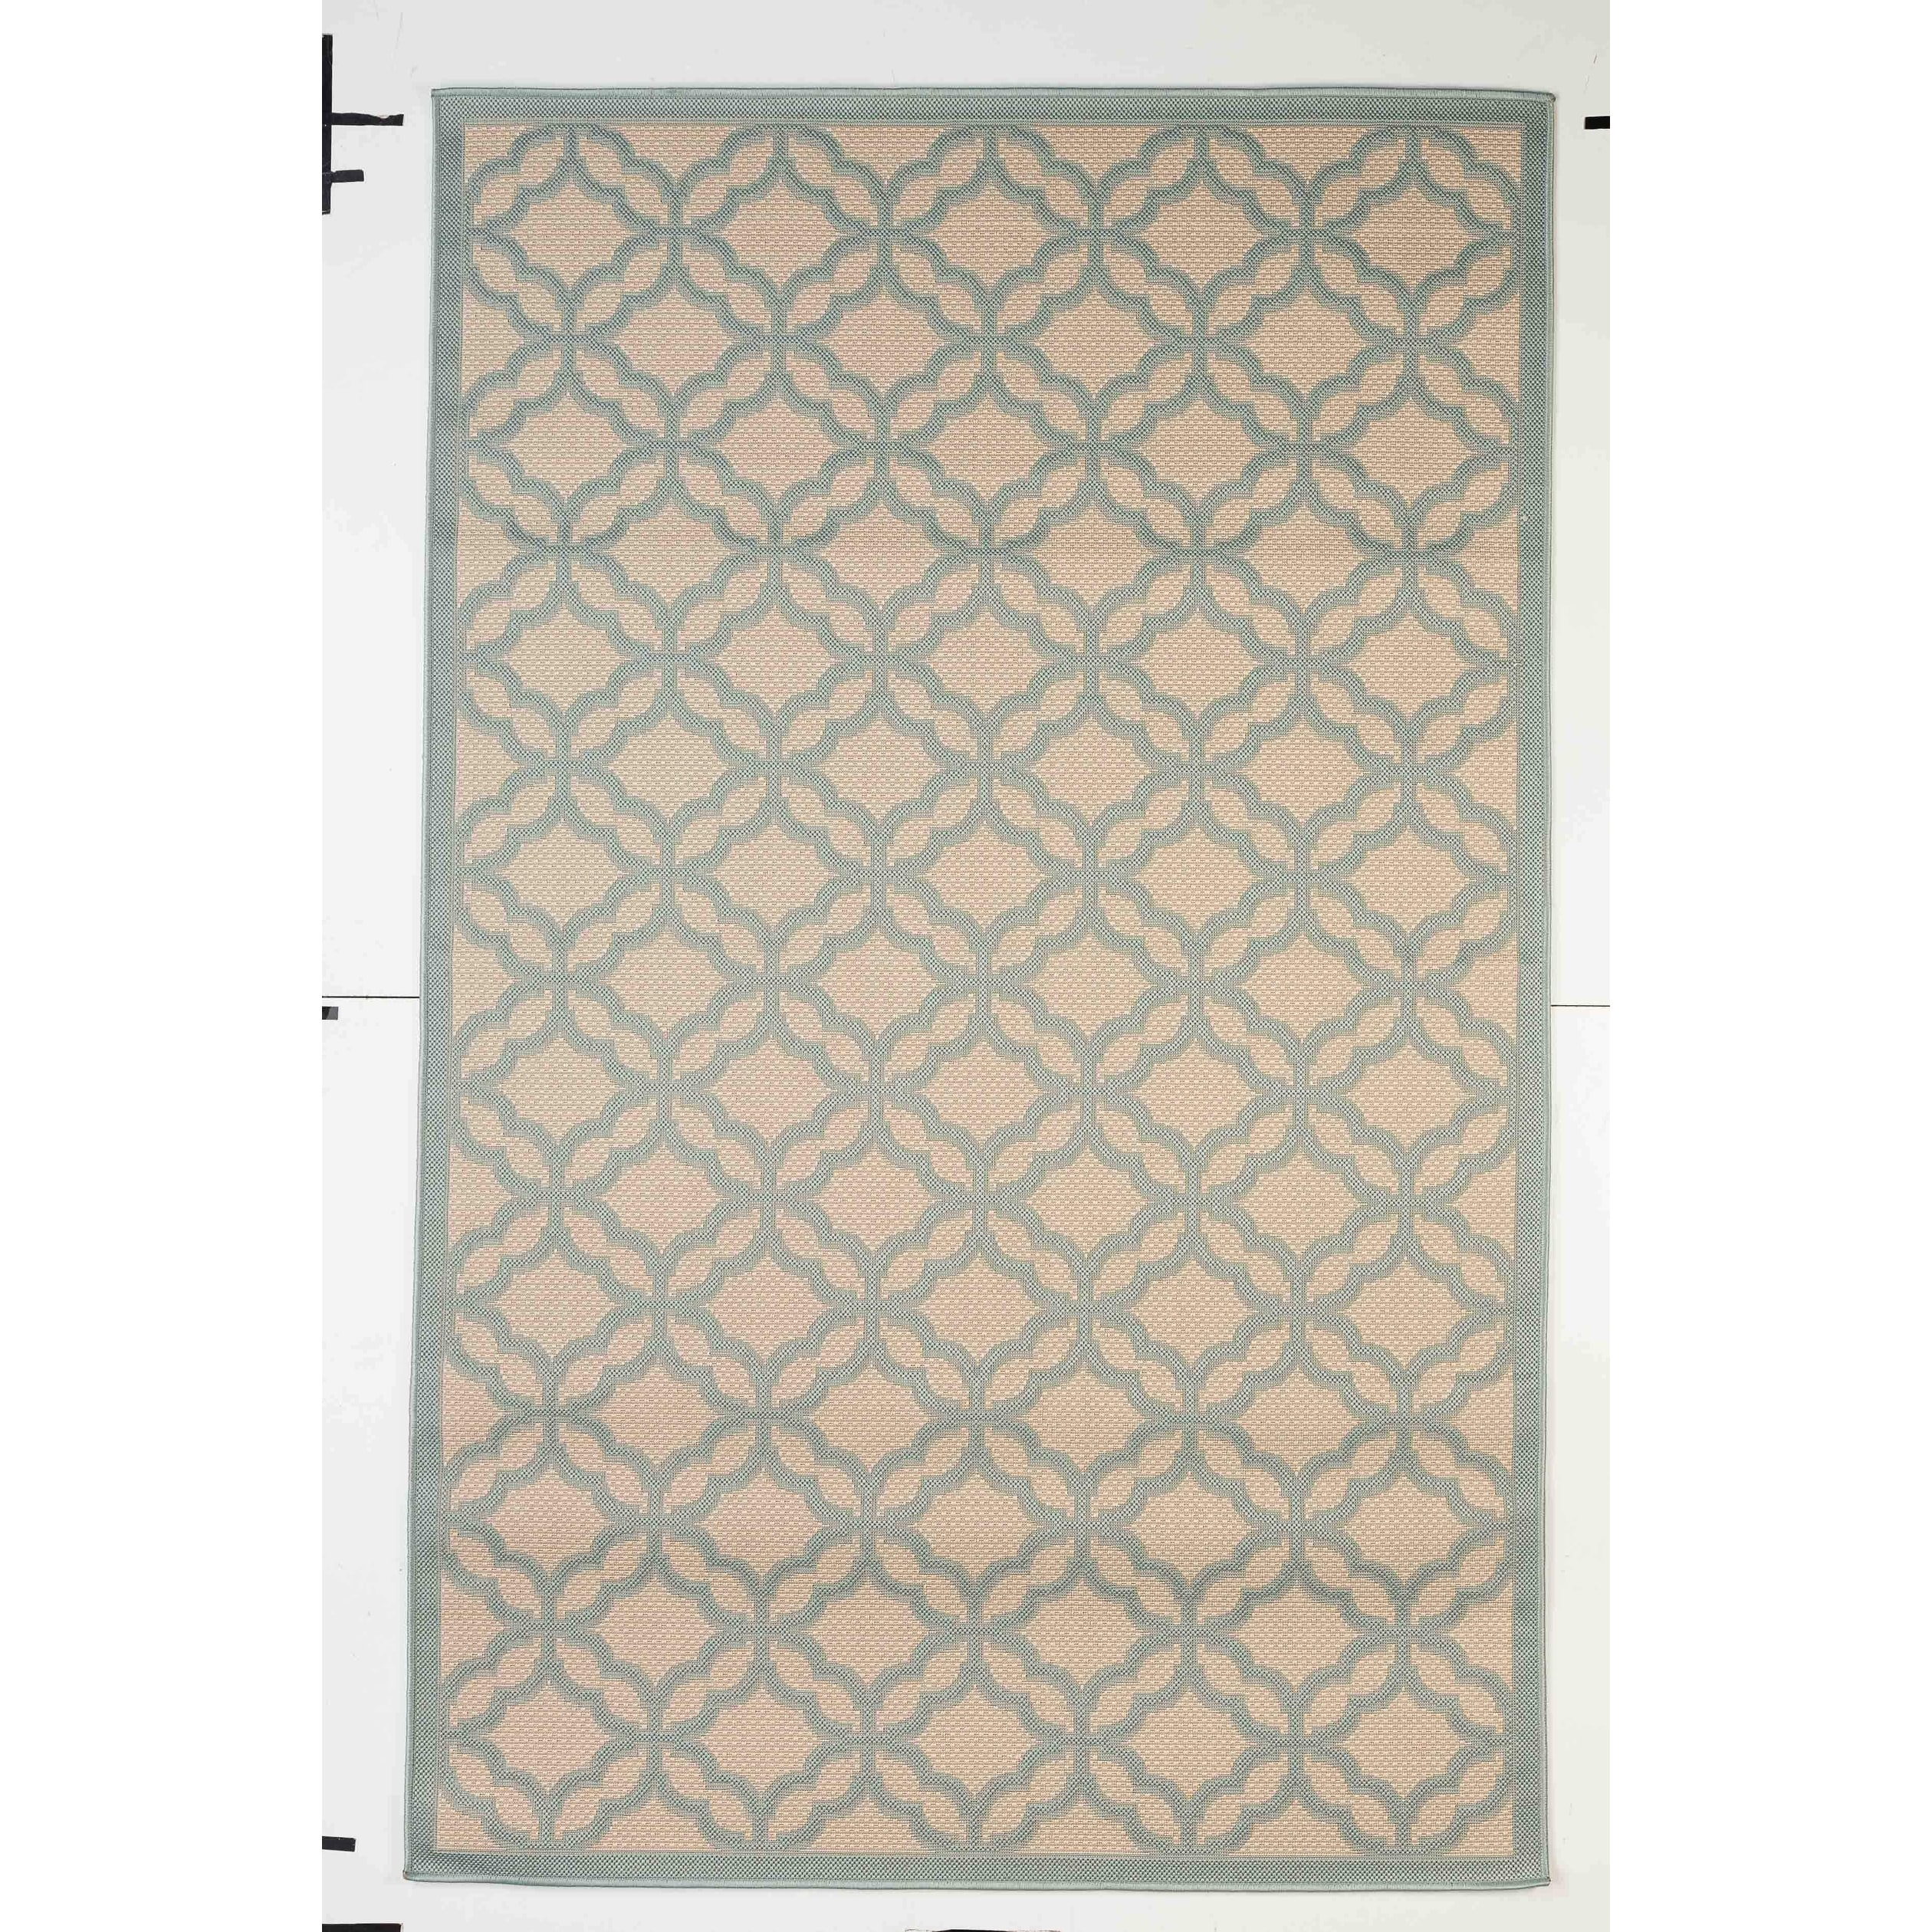 Shop Flatweave Patio Camp And Picnic Indoor Outdoor Rug 5 Ft By 8 Ft 5 X 8 Overstock 27775751